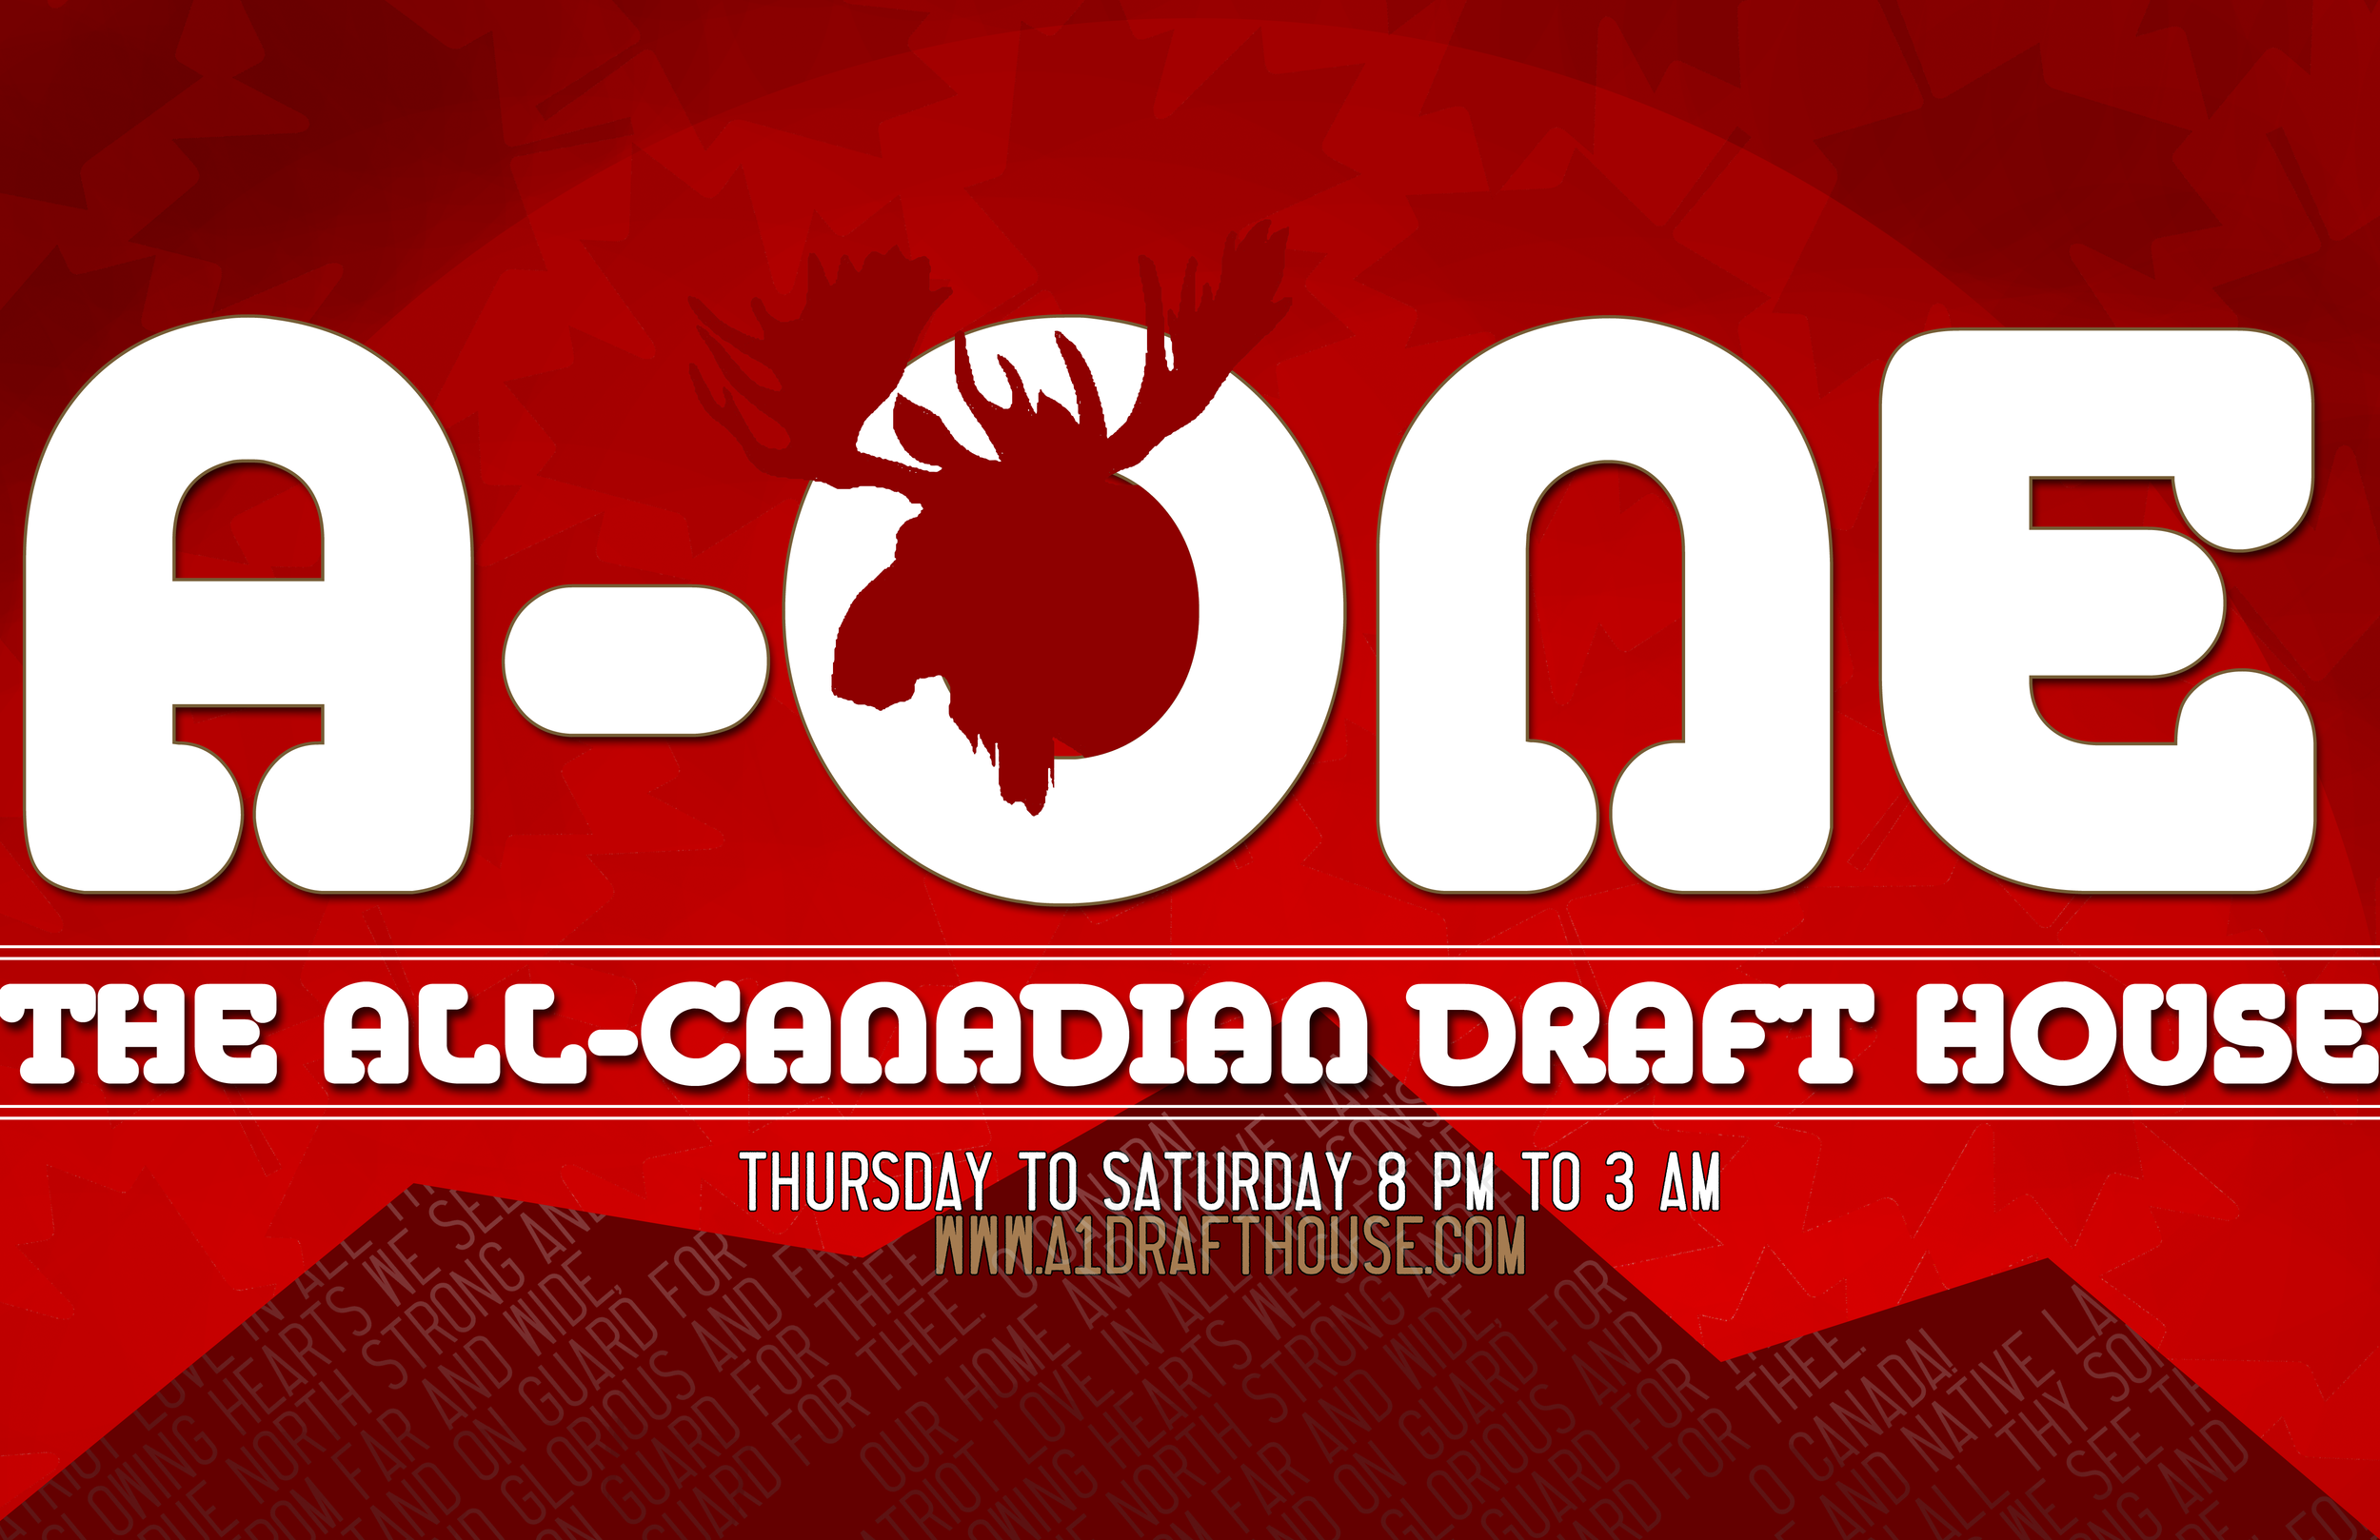 A-One Draft House Promo Banner